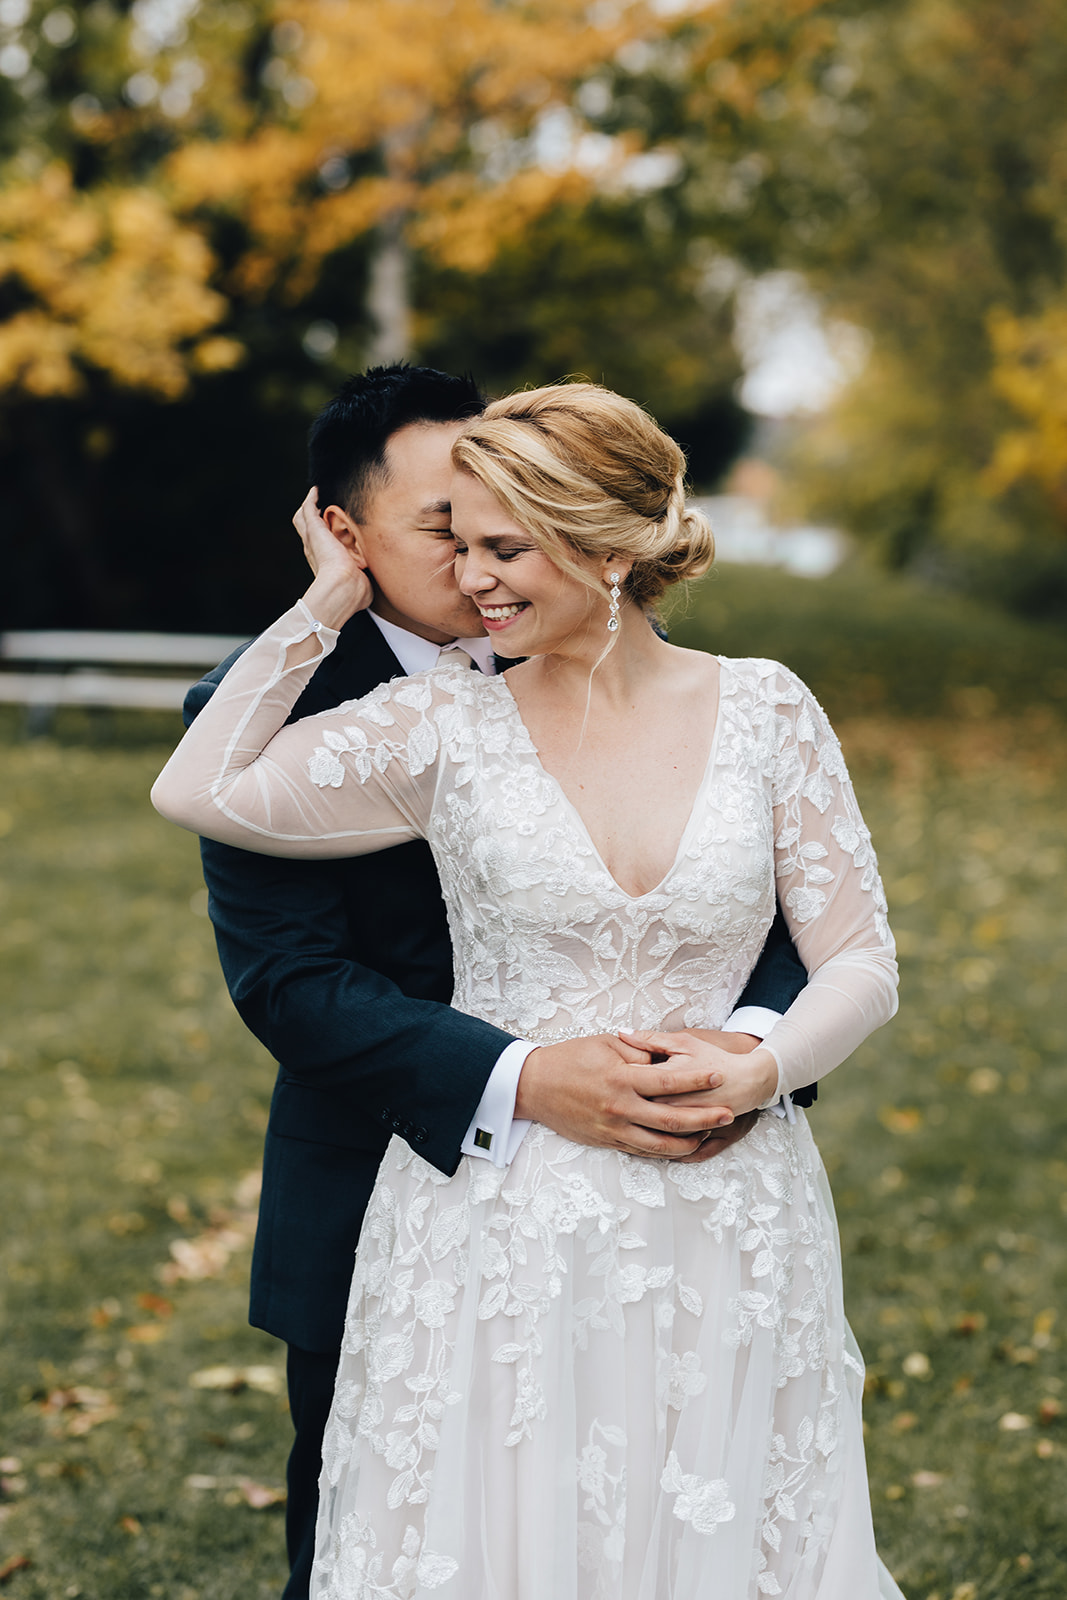 Groom holding his bride from behind while she smiles